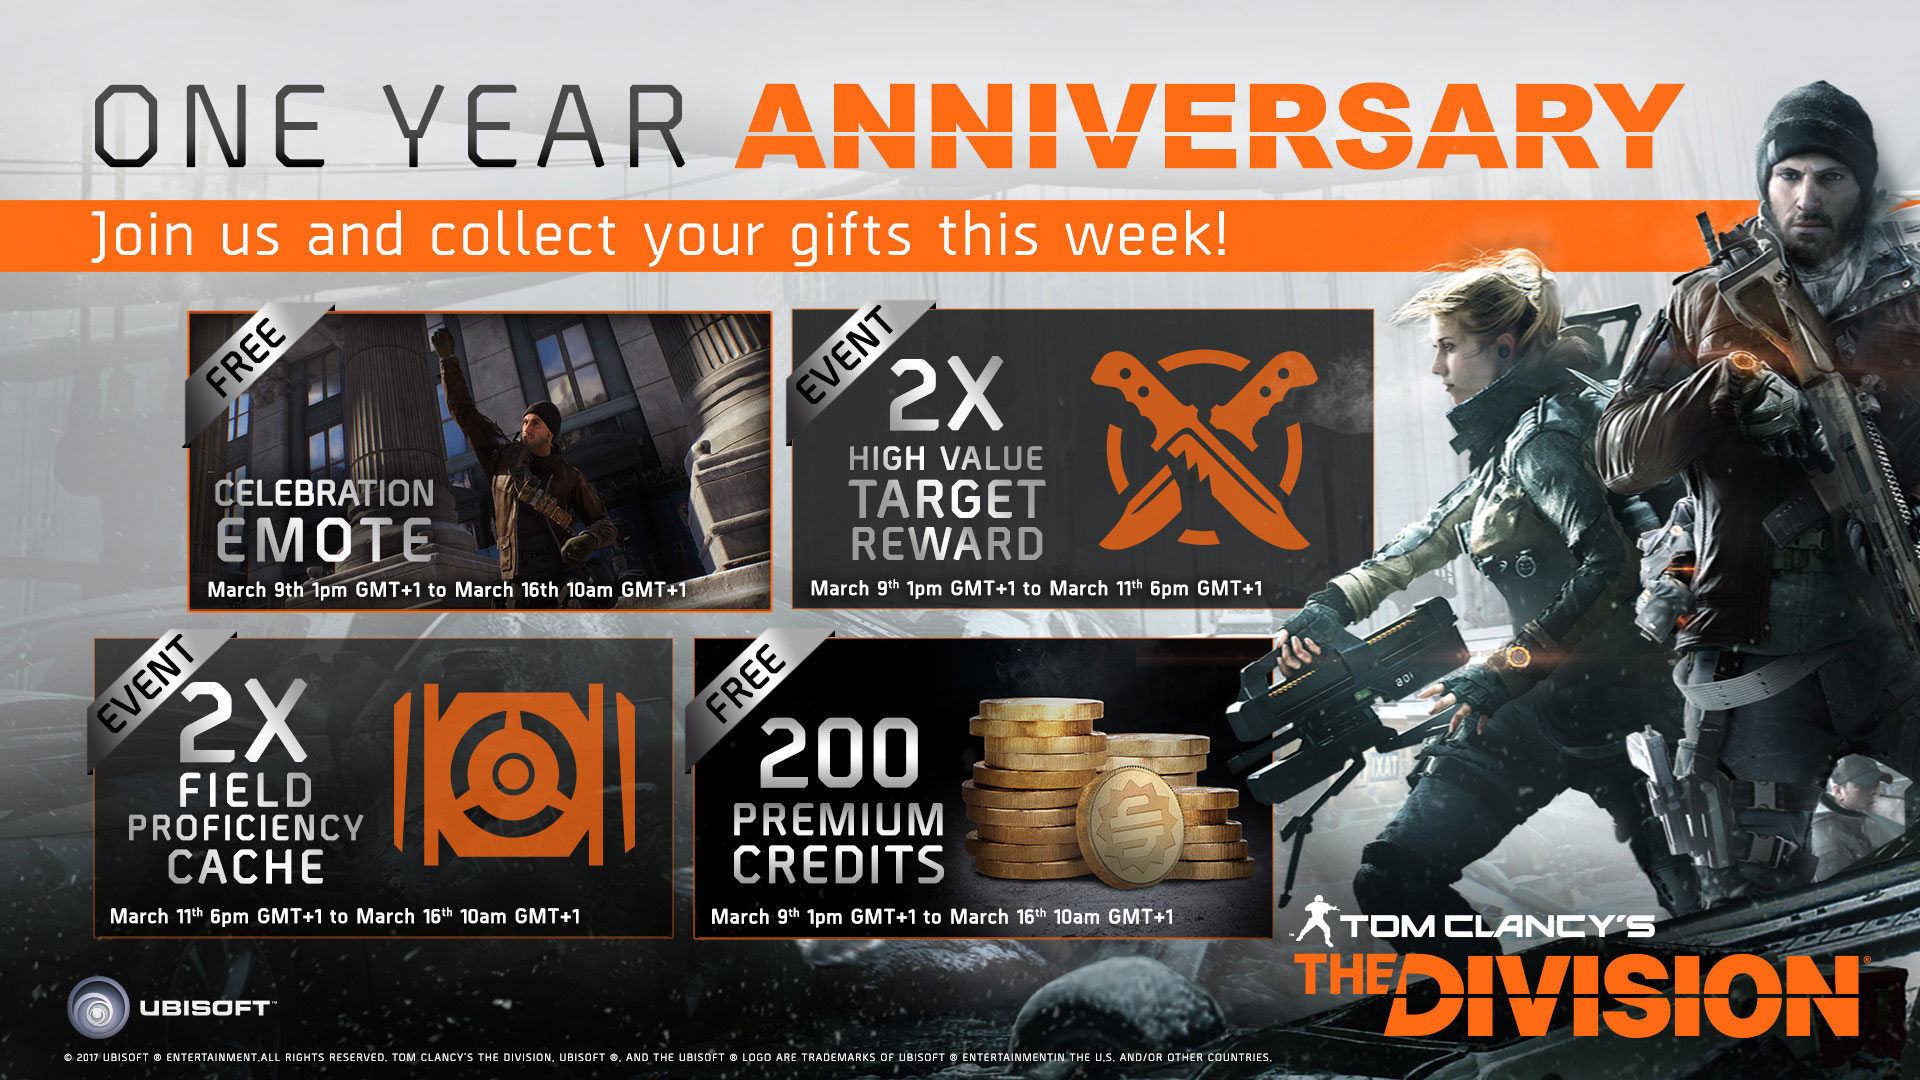 Photo of The Division Anniversary: Players Will Receive Premium Credits and New Content For Free